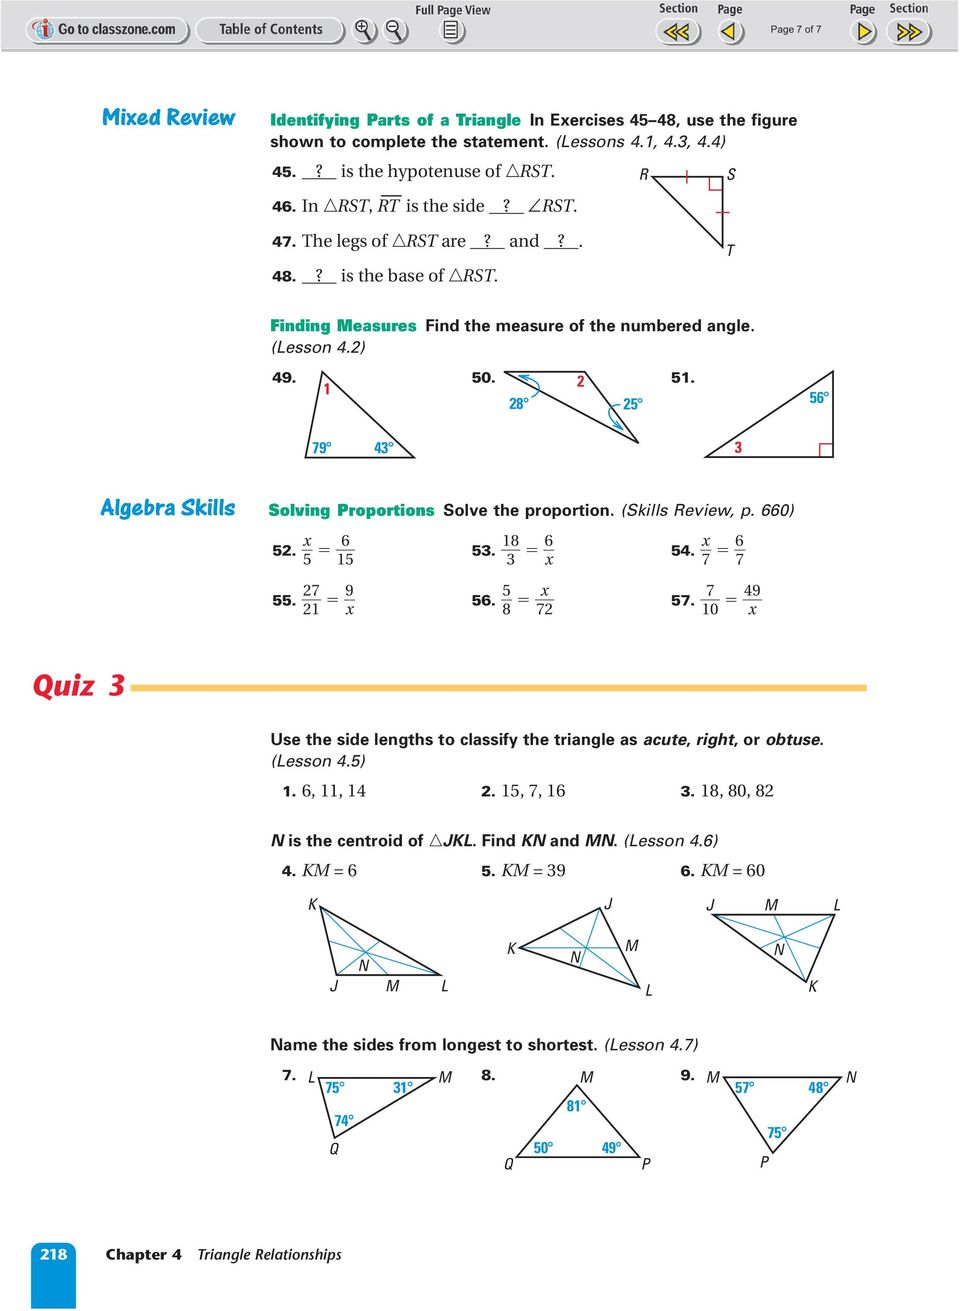 1 2 28 2 79 4 lgebra Skills Solving roportions Solve the proportion. (Skills eview, p. 0) x 2. 1. 1 8 x 4. x 7 7. 2 7 21 9 x. 8 x 7 7.